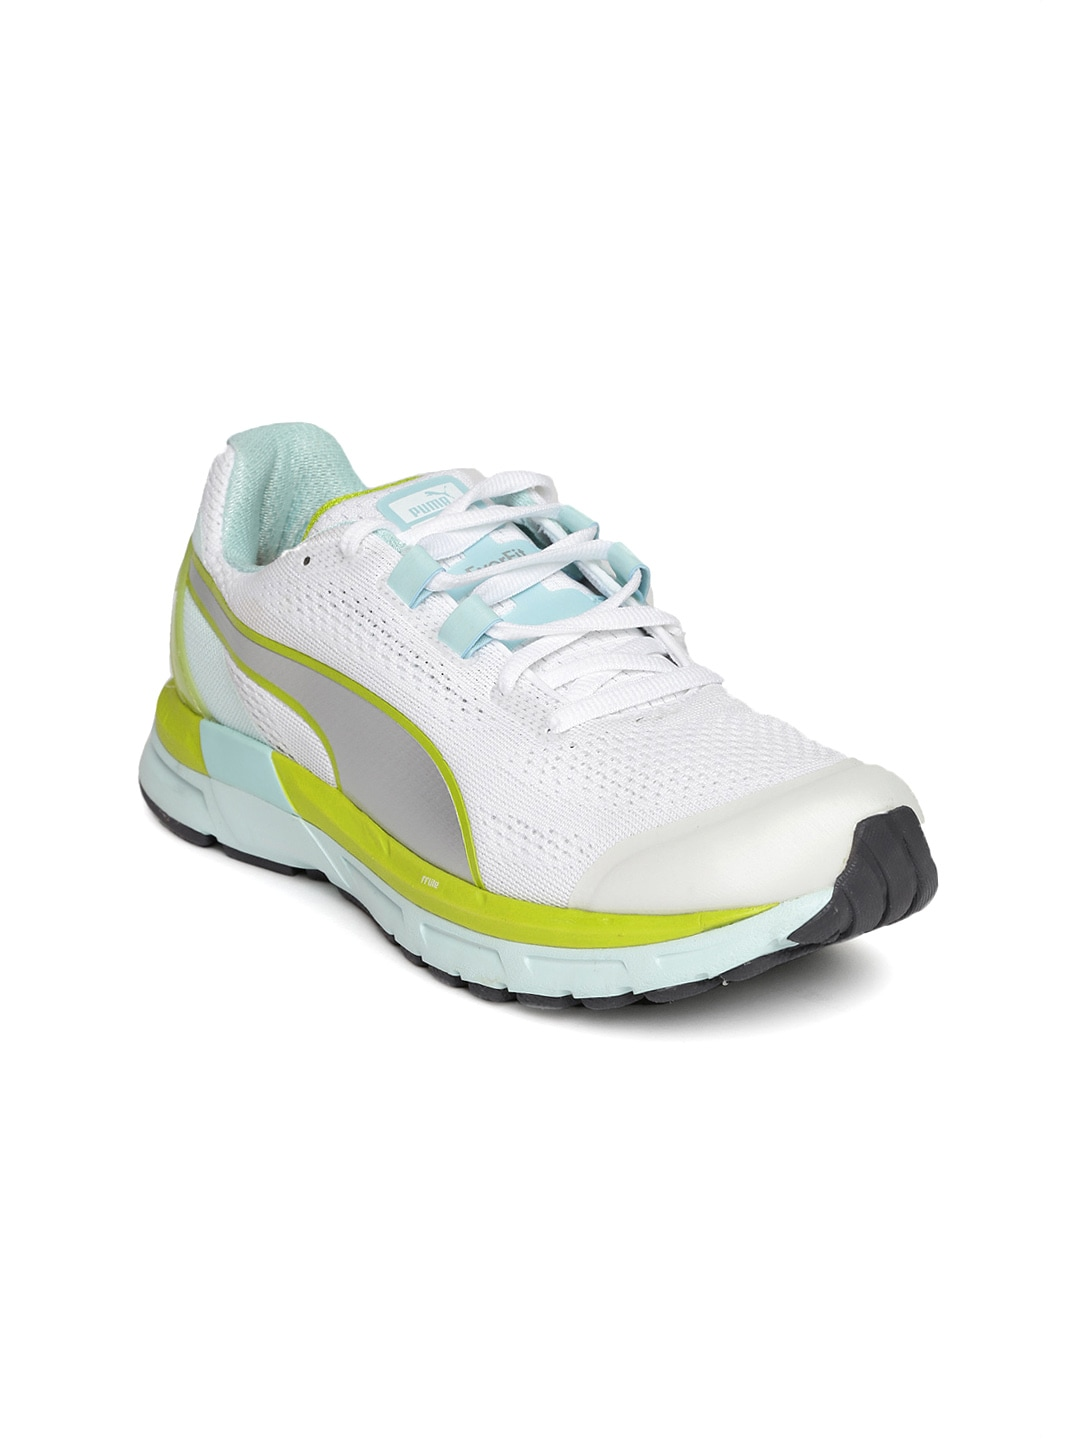 Women s Puma Sports Shoes - Buy Puma Sports Shoes for Women Online in India 8d26c7cbd